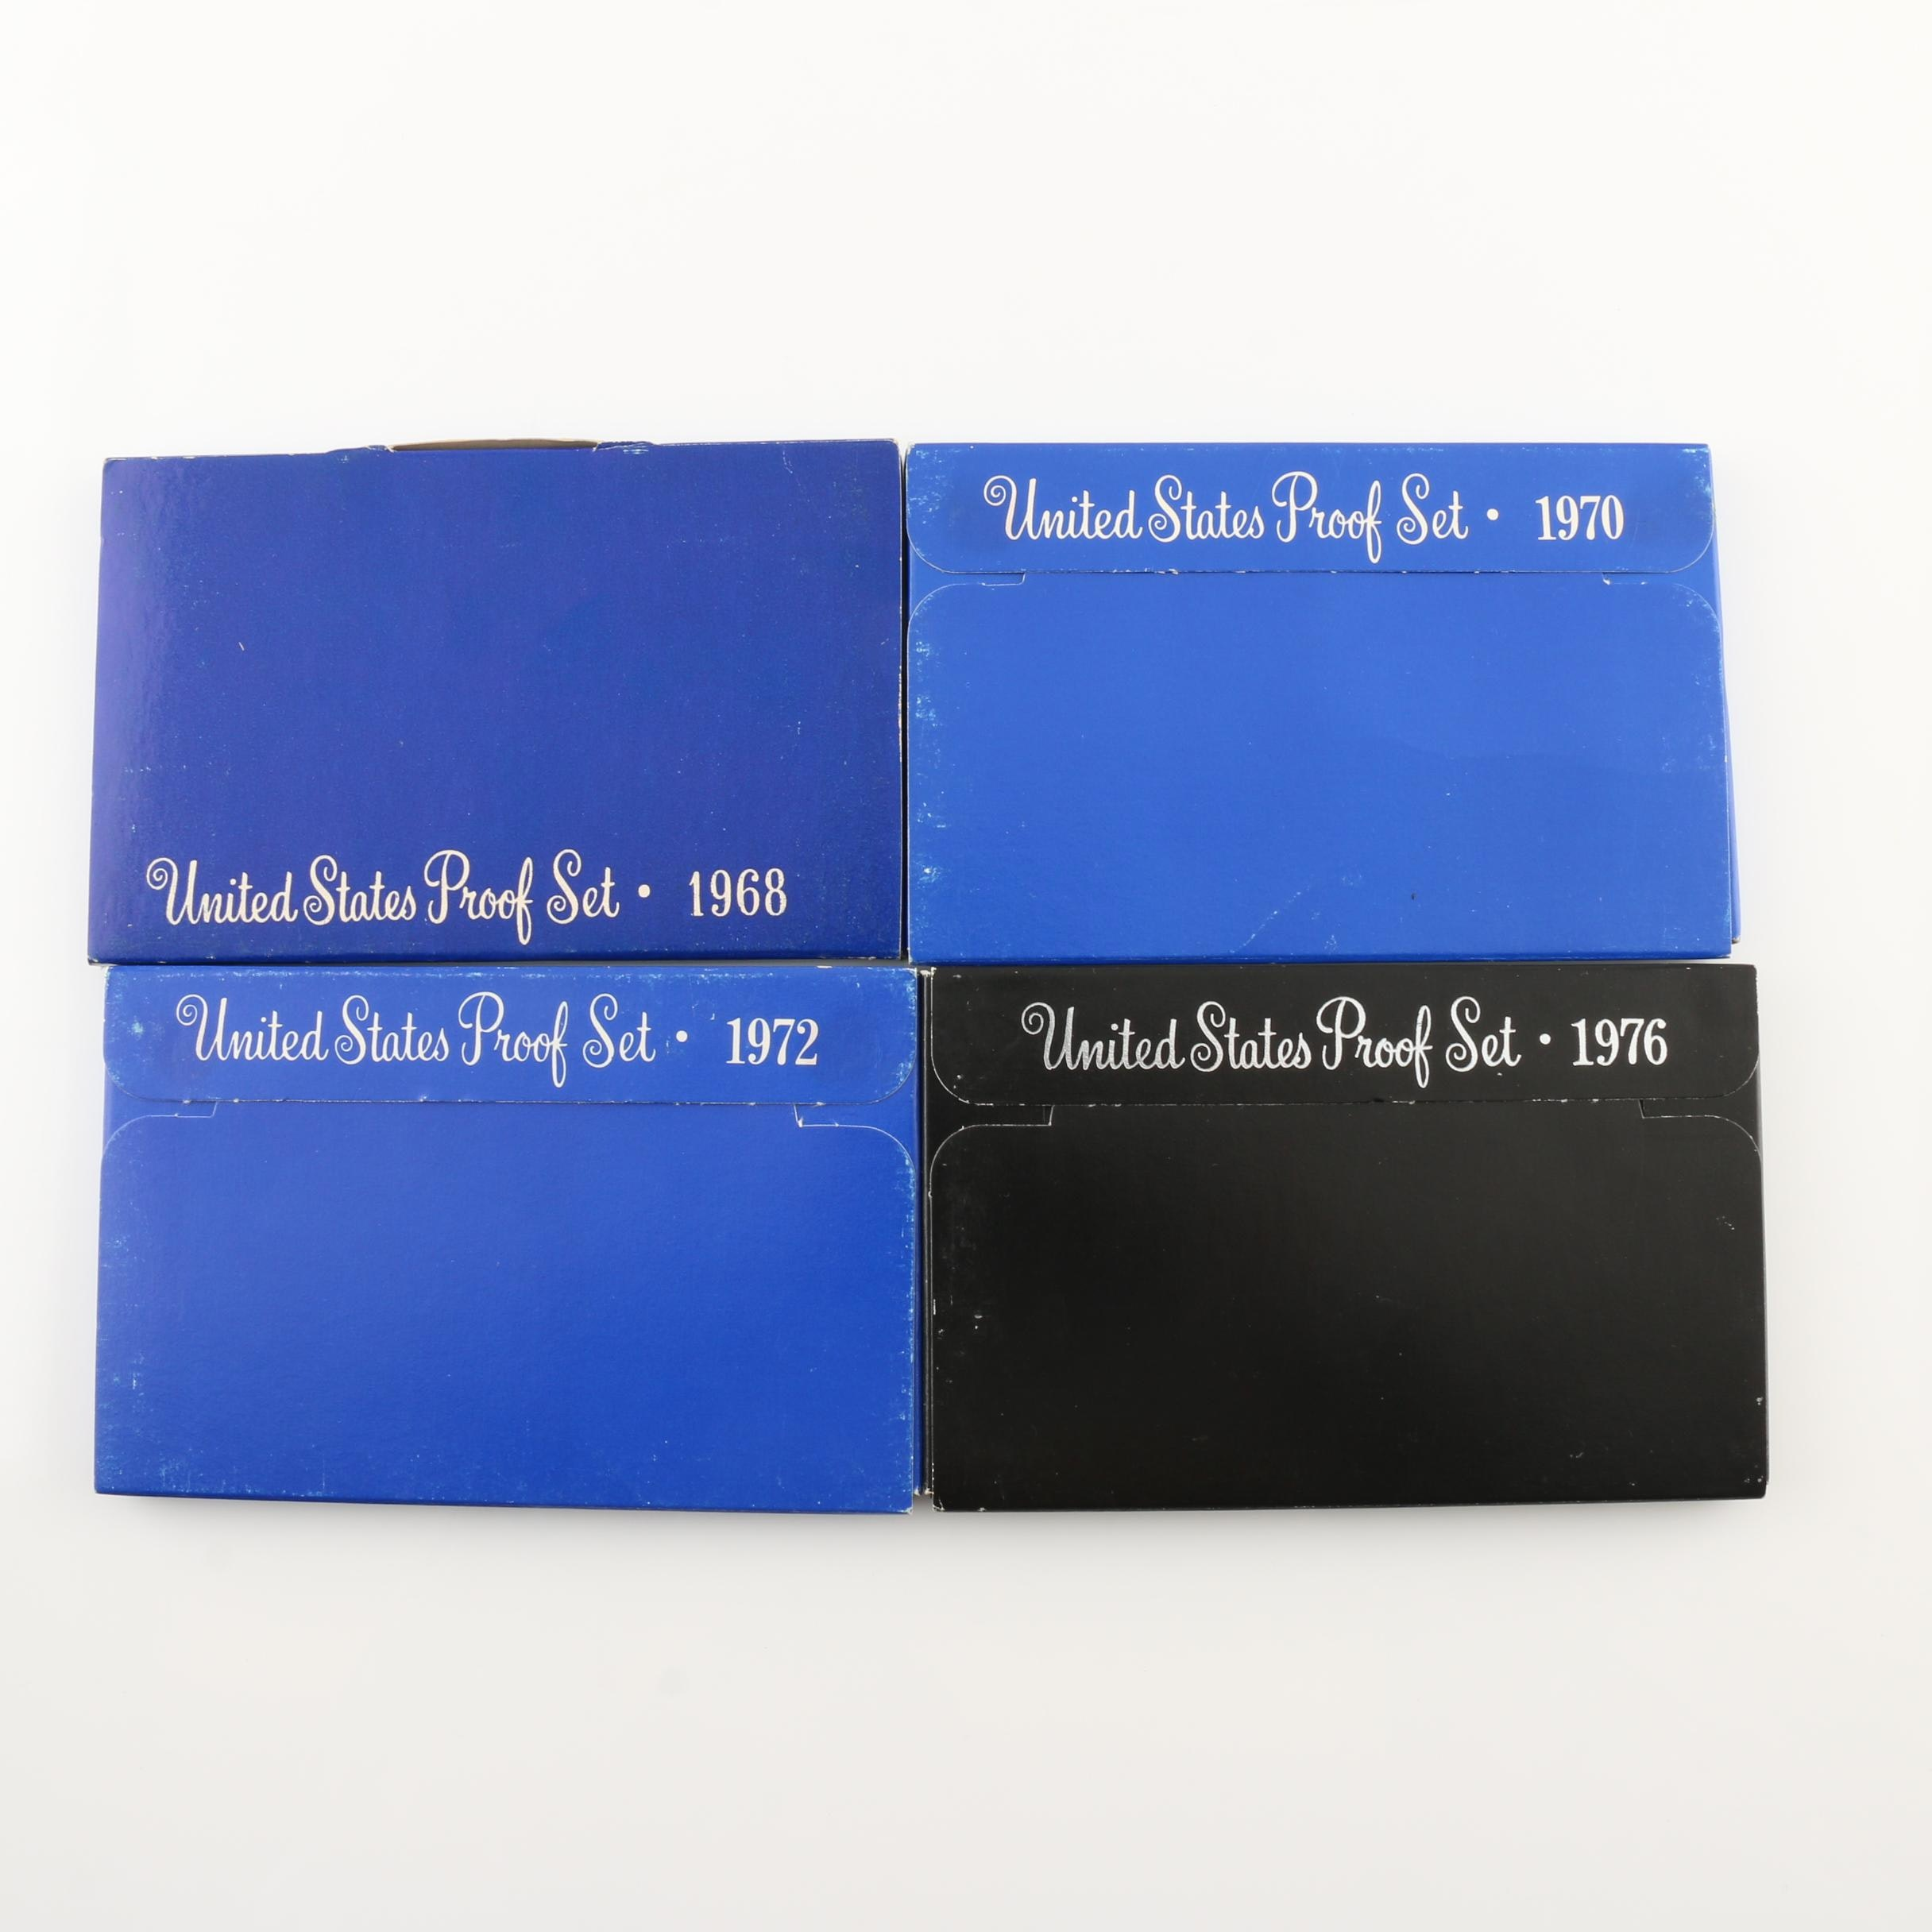 Group of Four U.S. Mint Proof Sets Including 1968, 1970, 1972, and 1976